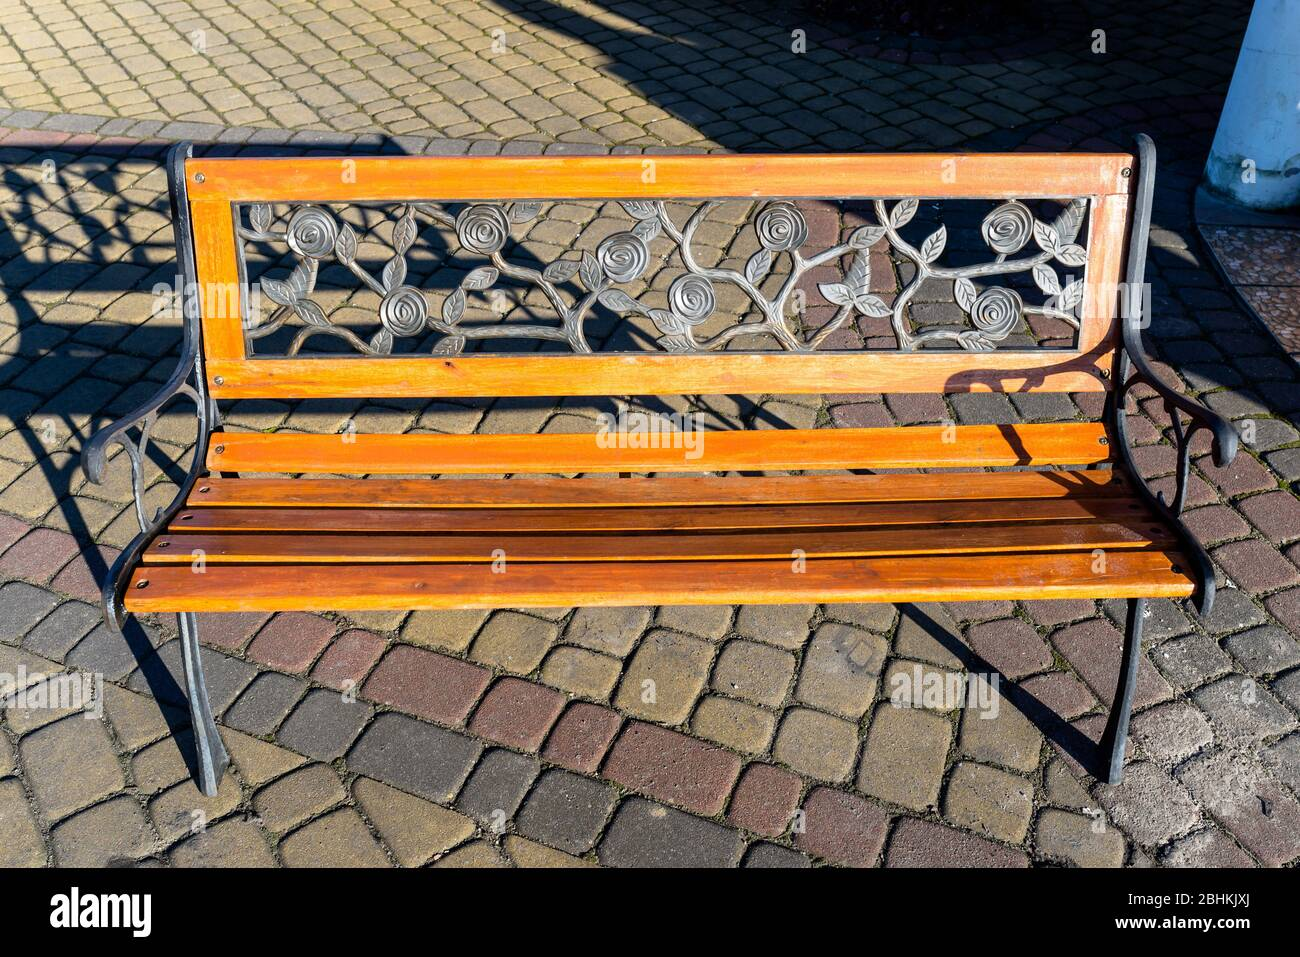 Picture of: A Decorative Bench Made By Hand From Wrought Metal In The Shape Of Leaves And A Wooden Seat Standing On A Paving Stone Stock Photo Alamy